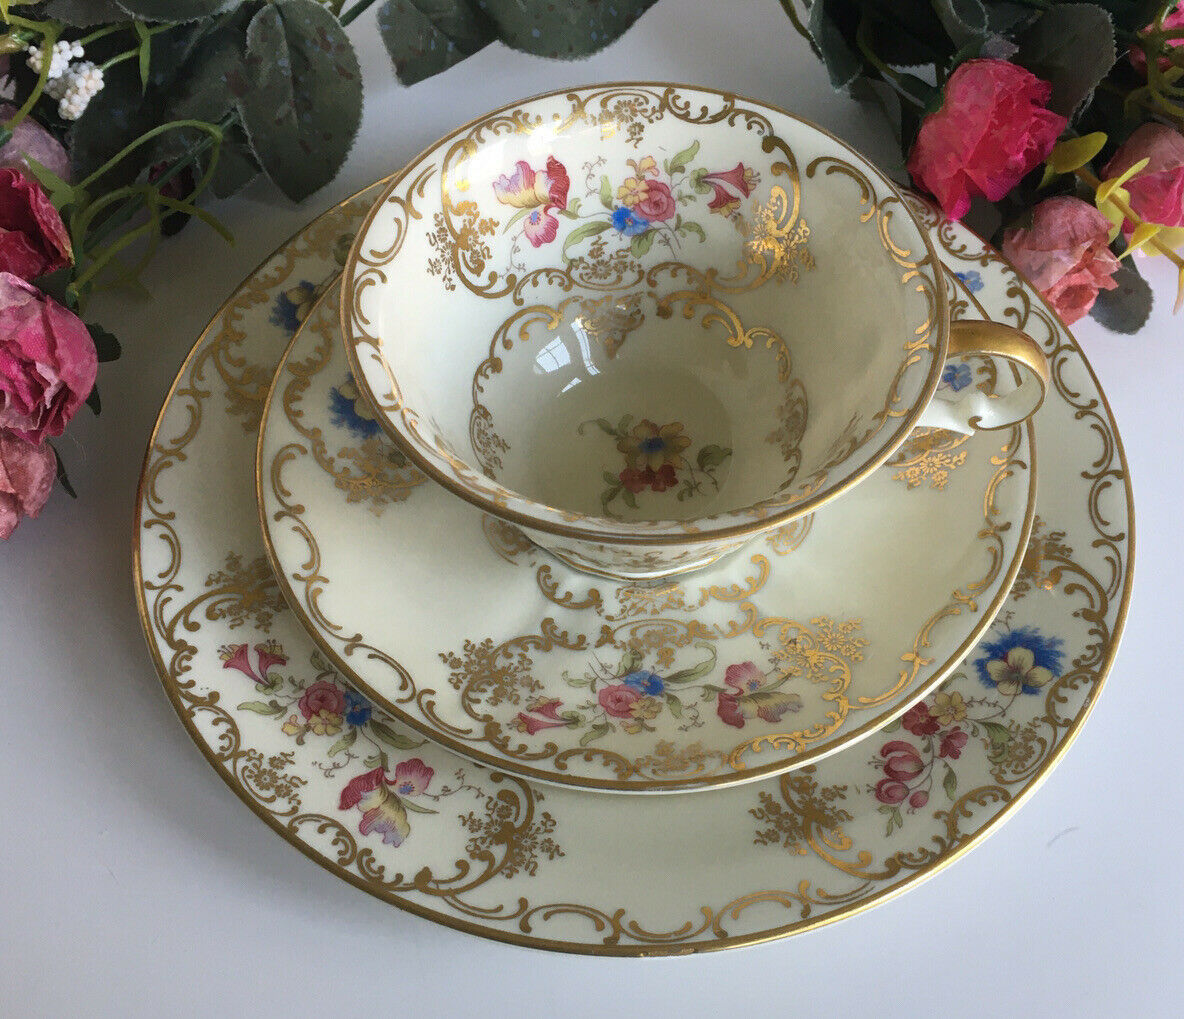 Primary image for VINTAGE RARE ROSENTHAL ELFENBEIN CUP, SAUCER AND SALAD PLATE